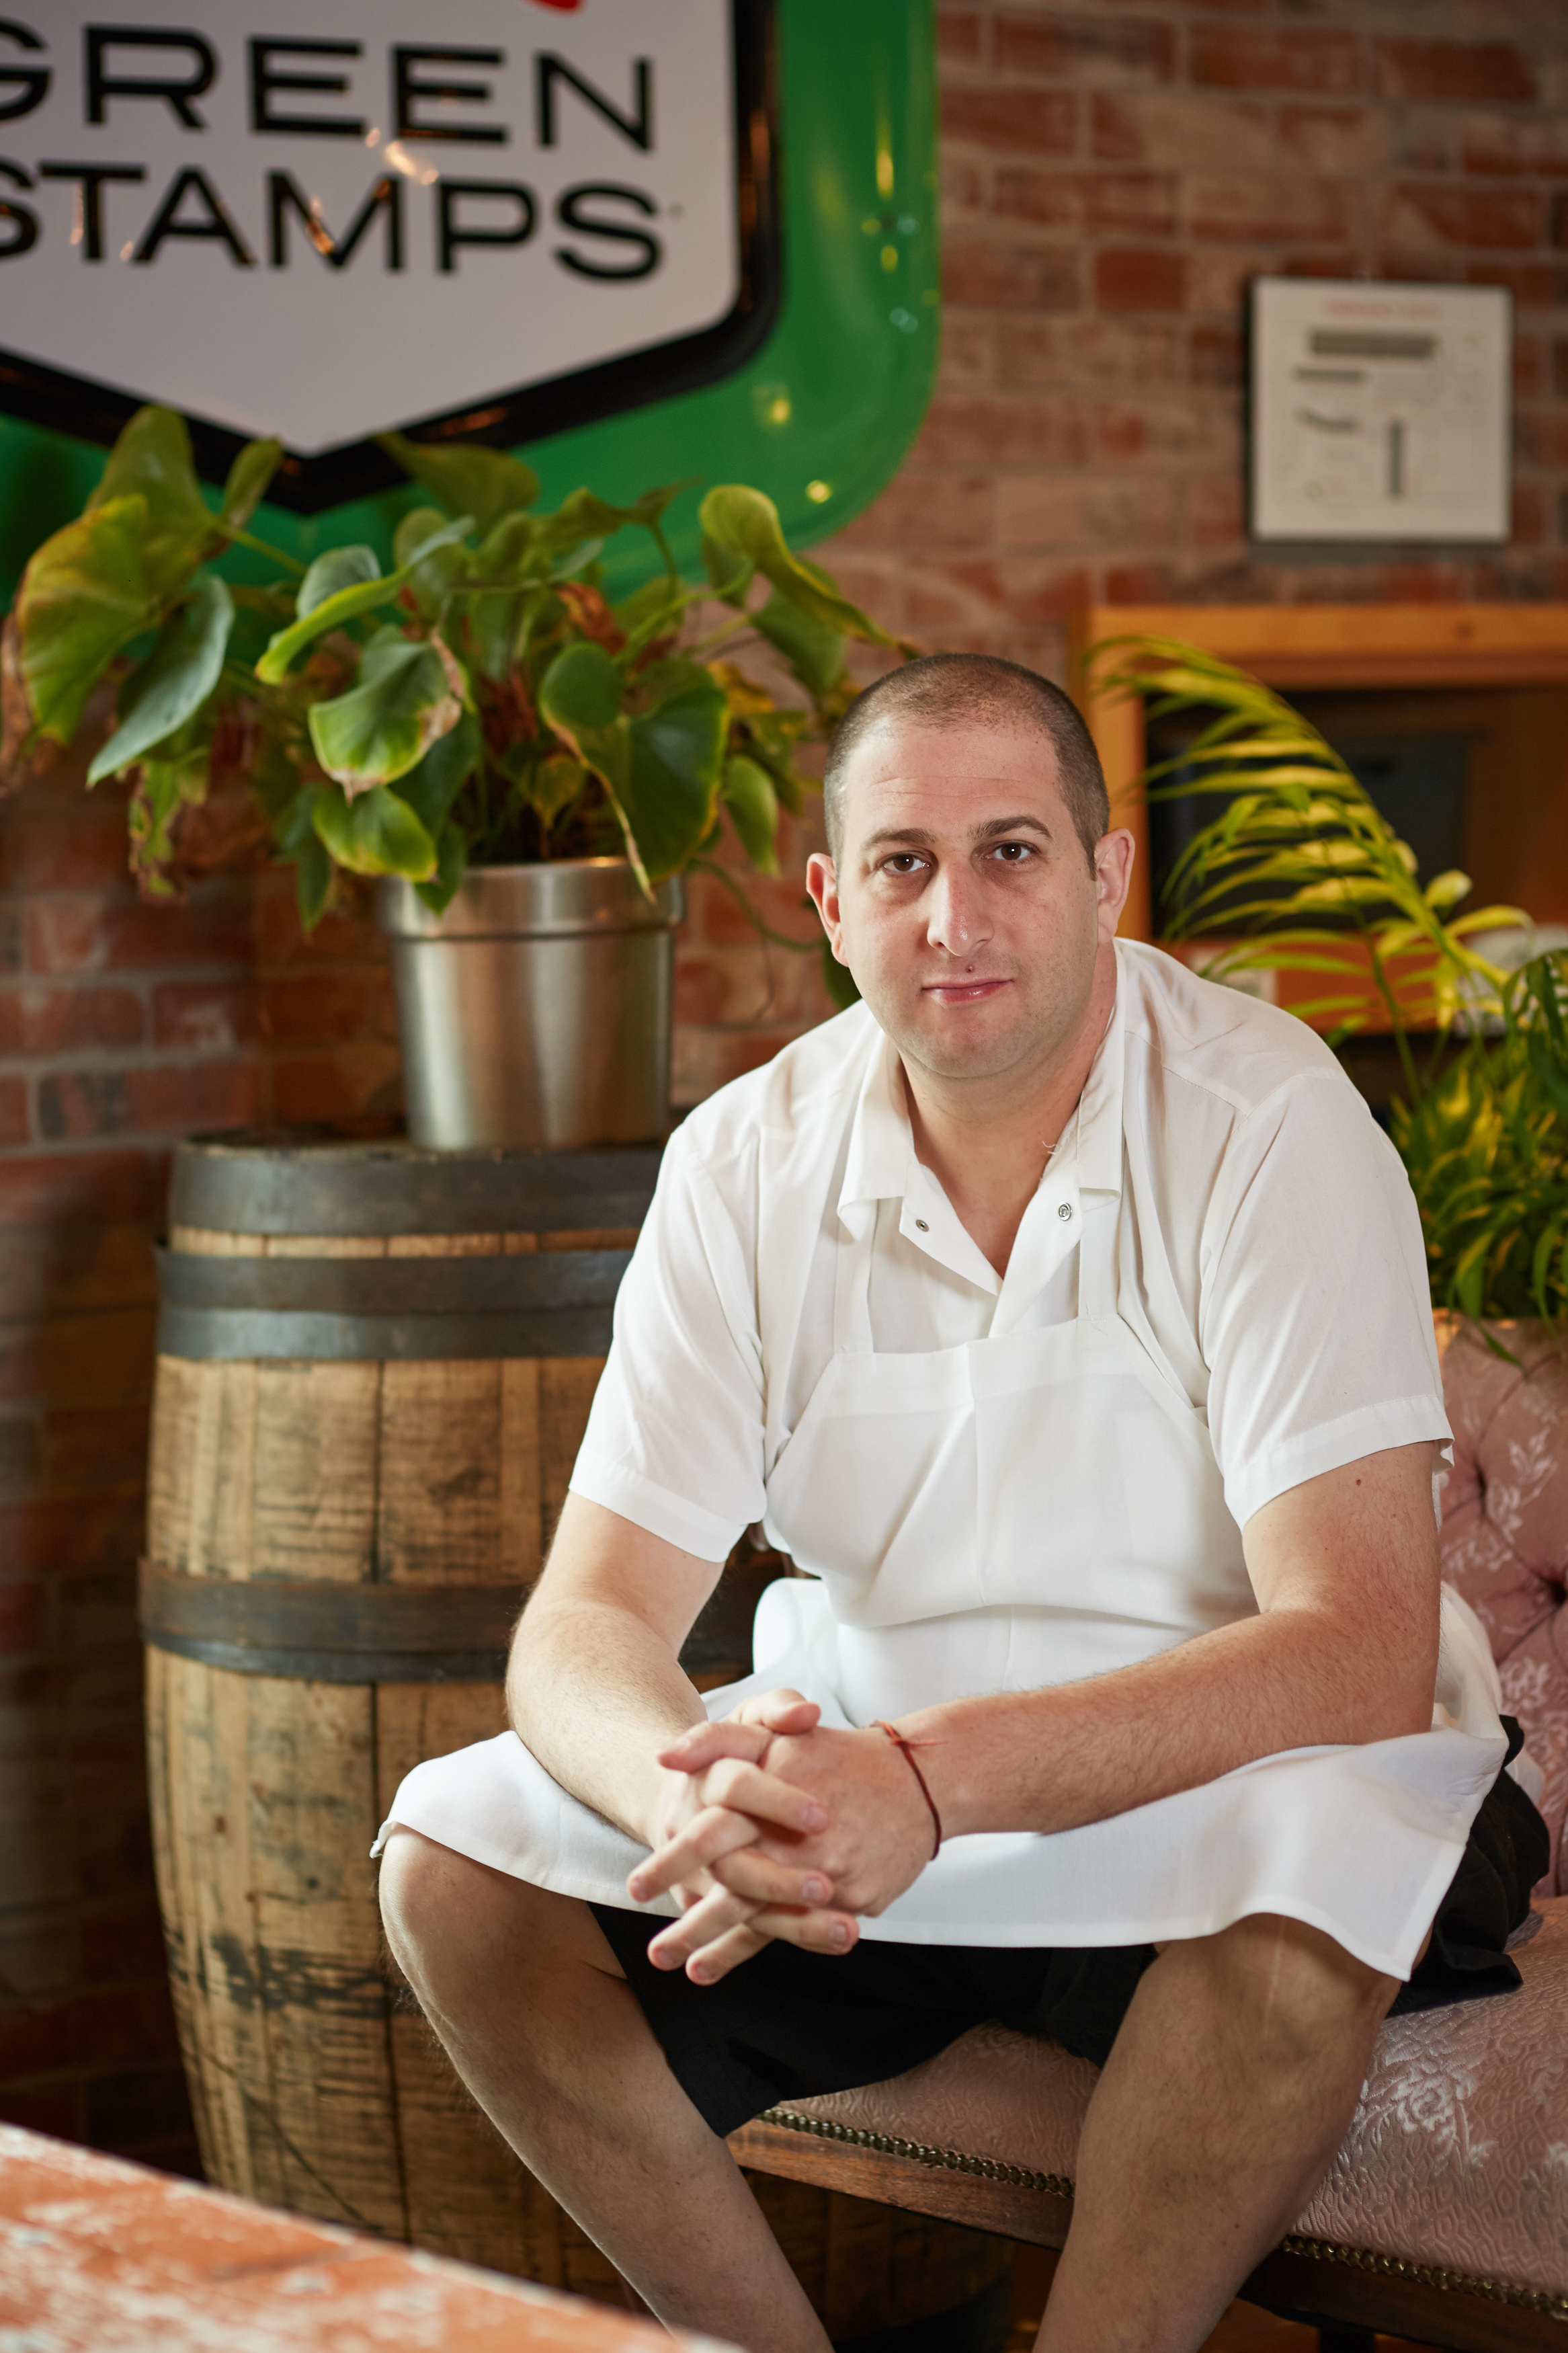 """A photo of chef Steve """"Nookie"""" Postal, wearing chef's whites and sitting in front of a barrel and greenery in a restaurant"""